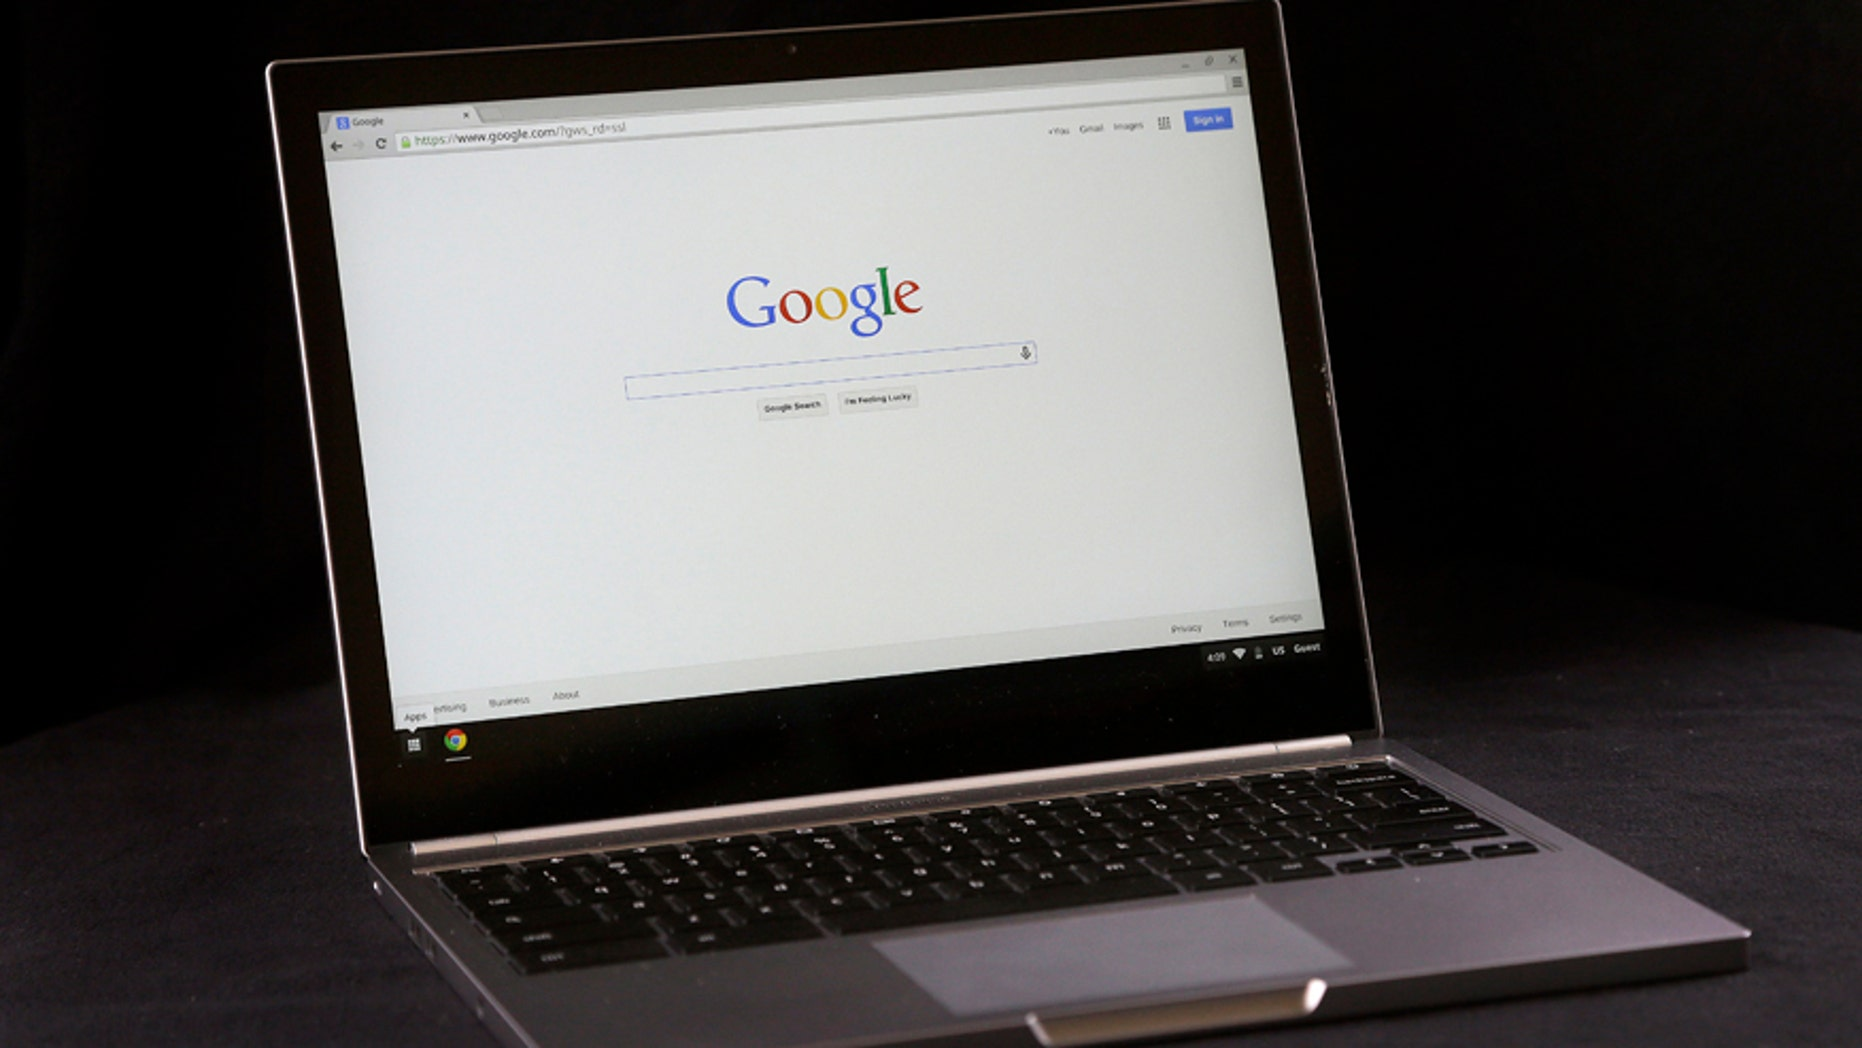 File photo - This Tuesday, March 10, 2015 photo shows the Google Chromebook Pixel laptop, in San Jose, Calif.